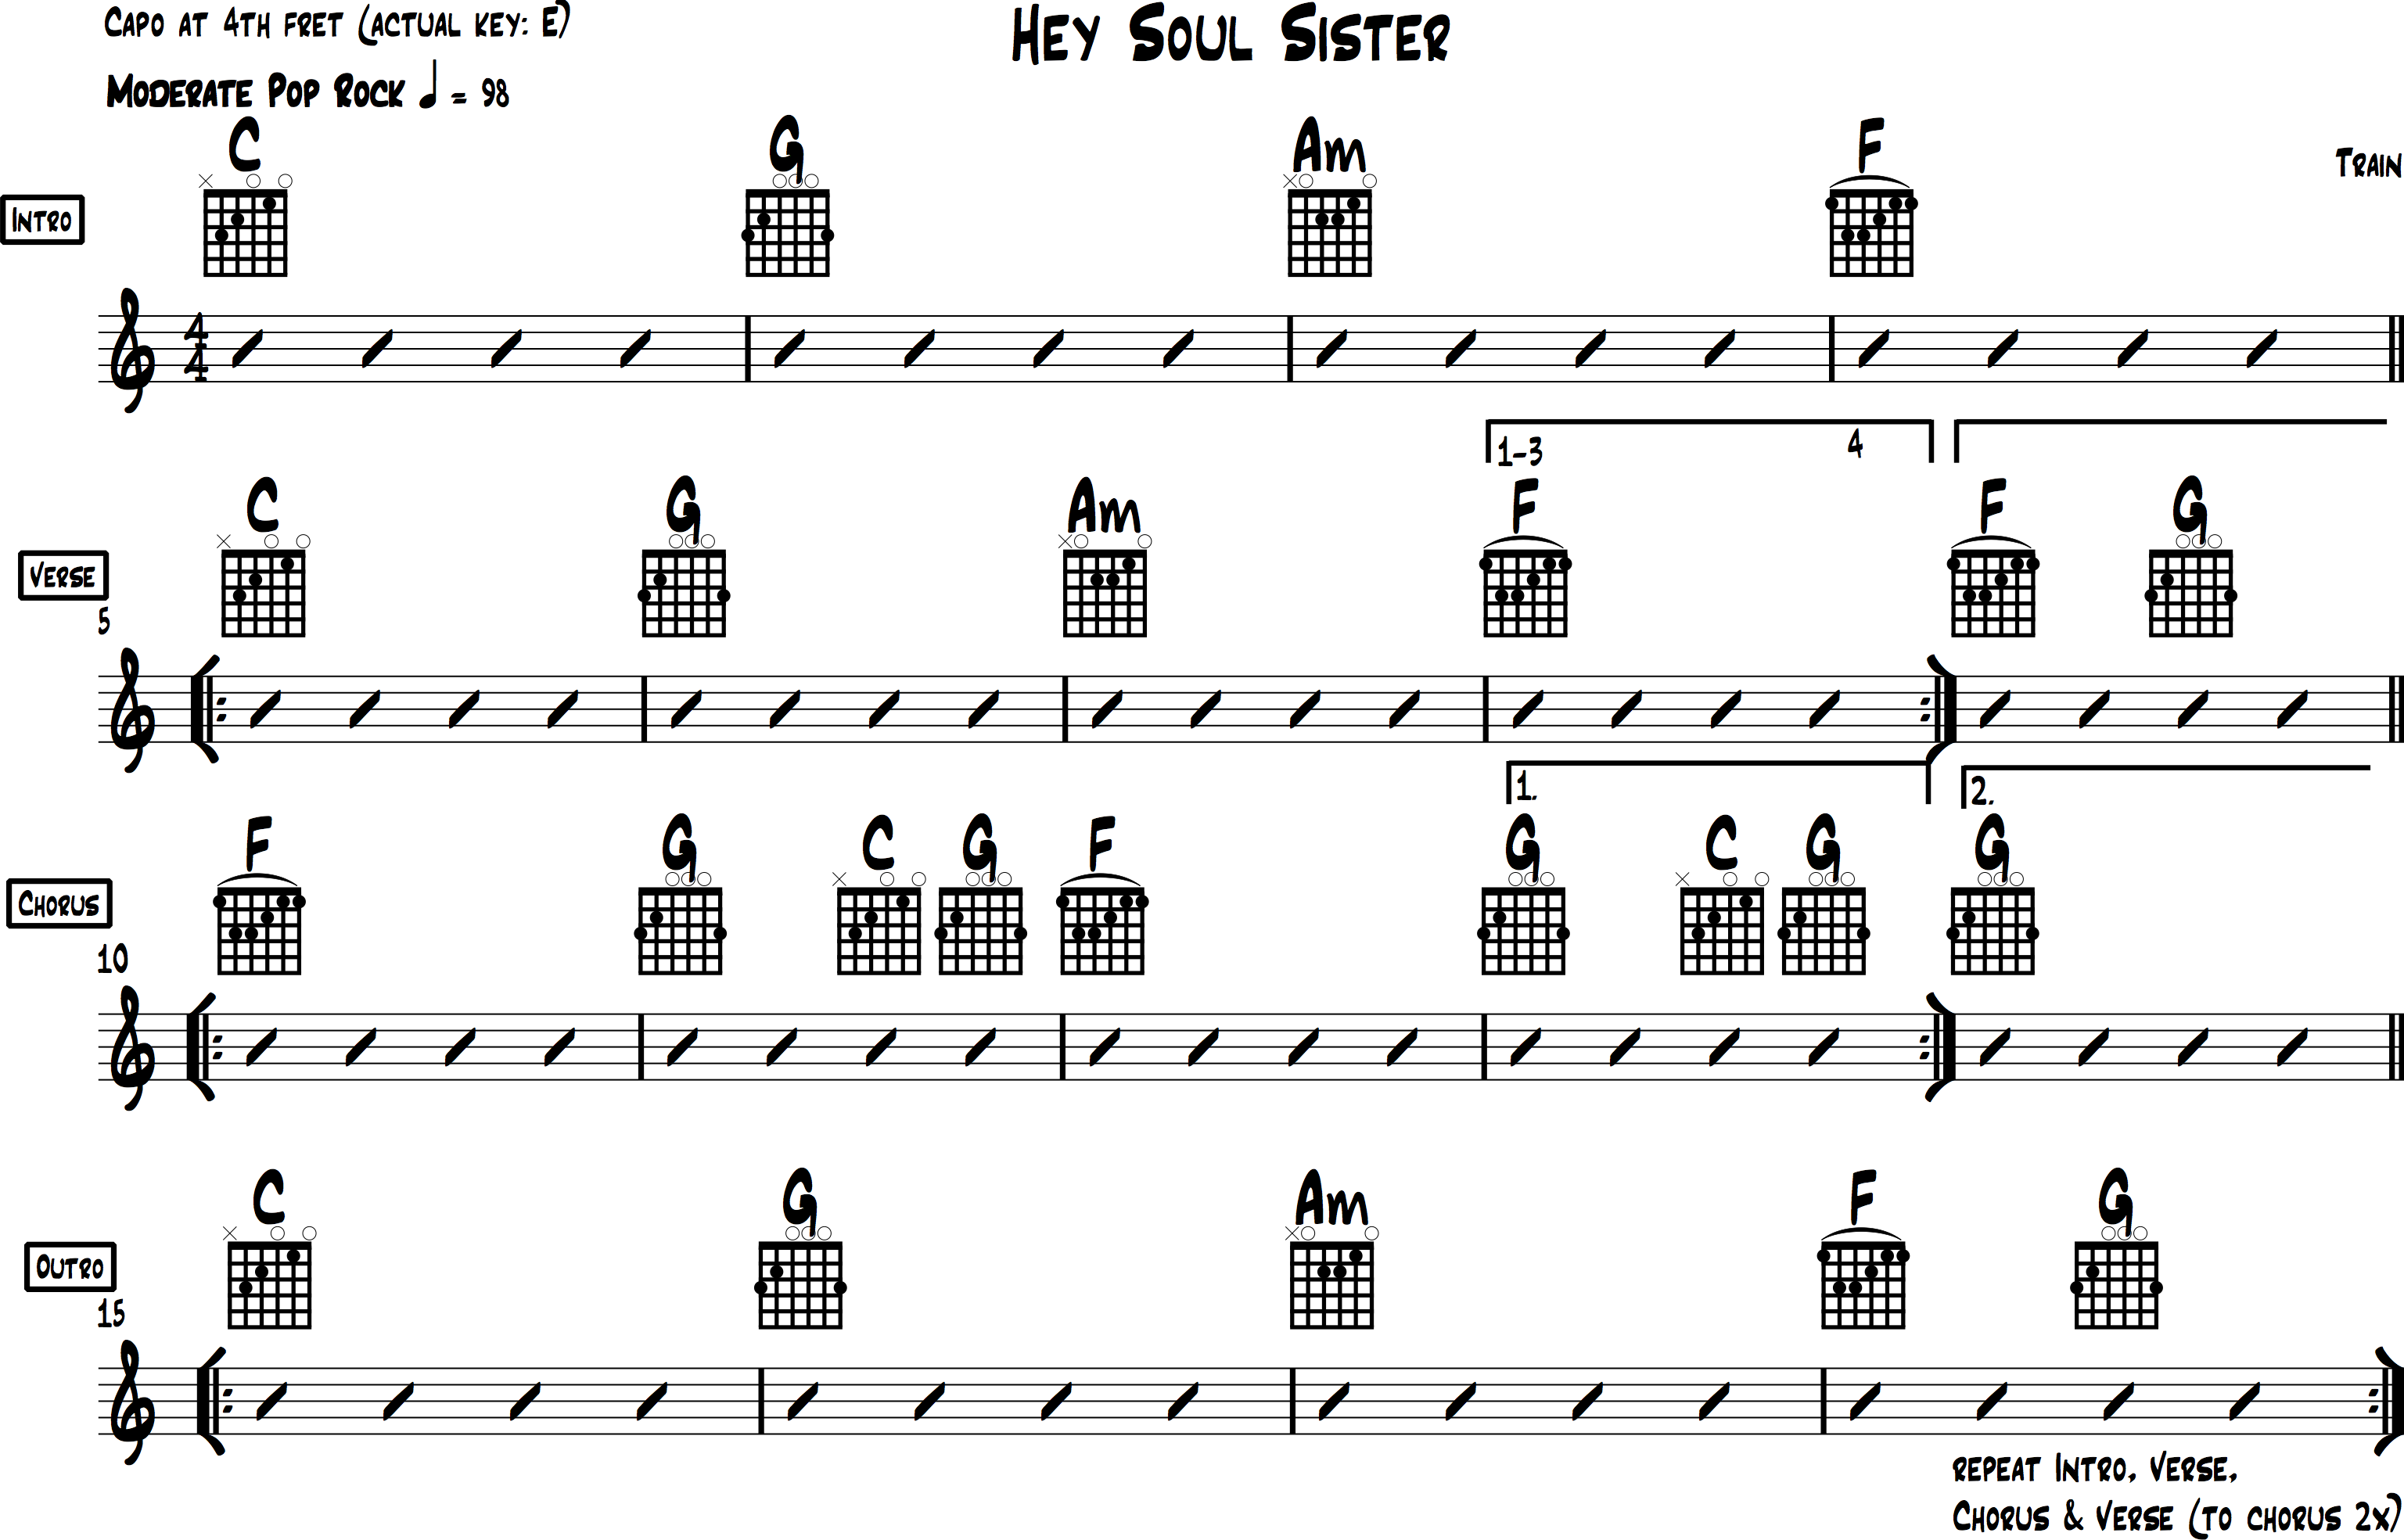 Hey Soul Sister Chords For Acoustic Guitar Train